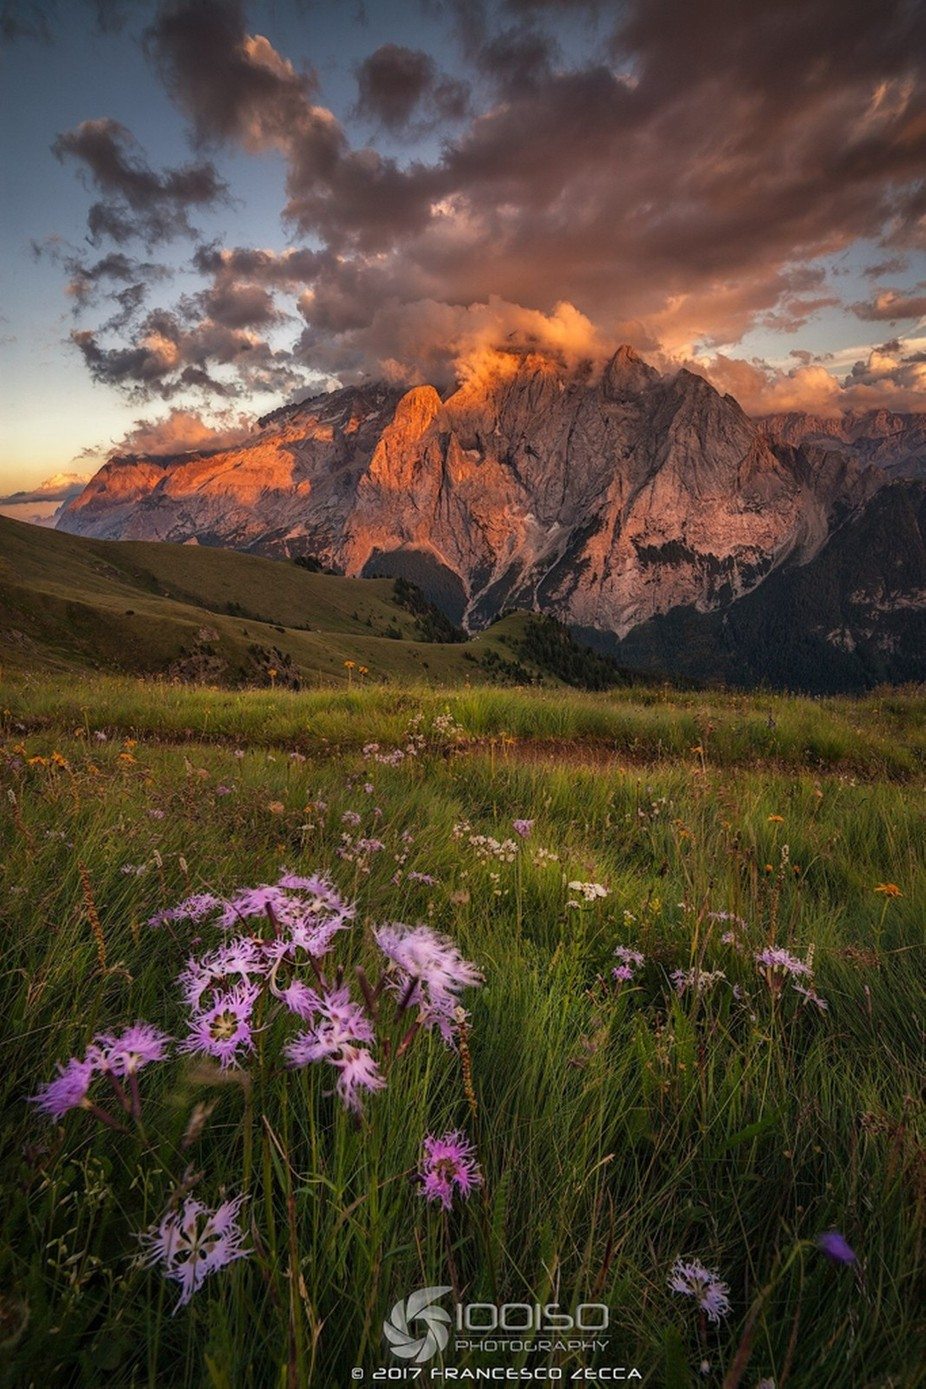 un fiore per la regina  by Francescozeccaphotography - Image Of The Month Photo Contest Vol 26